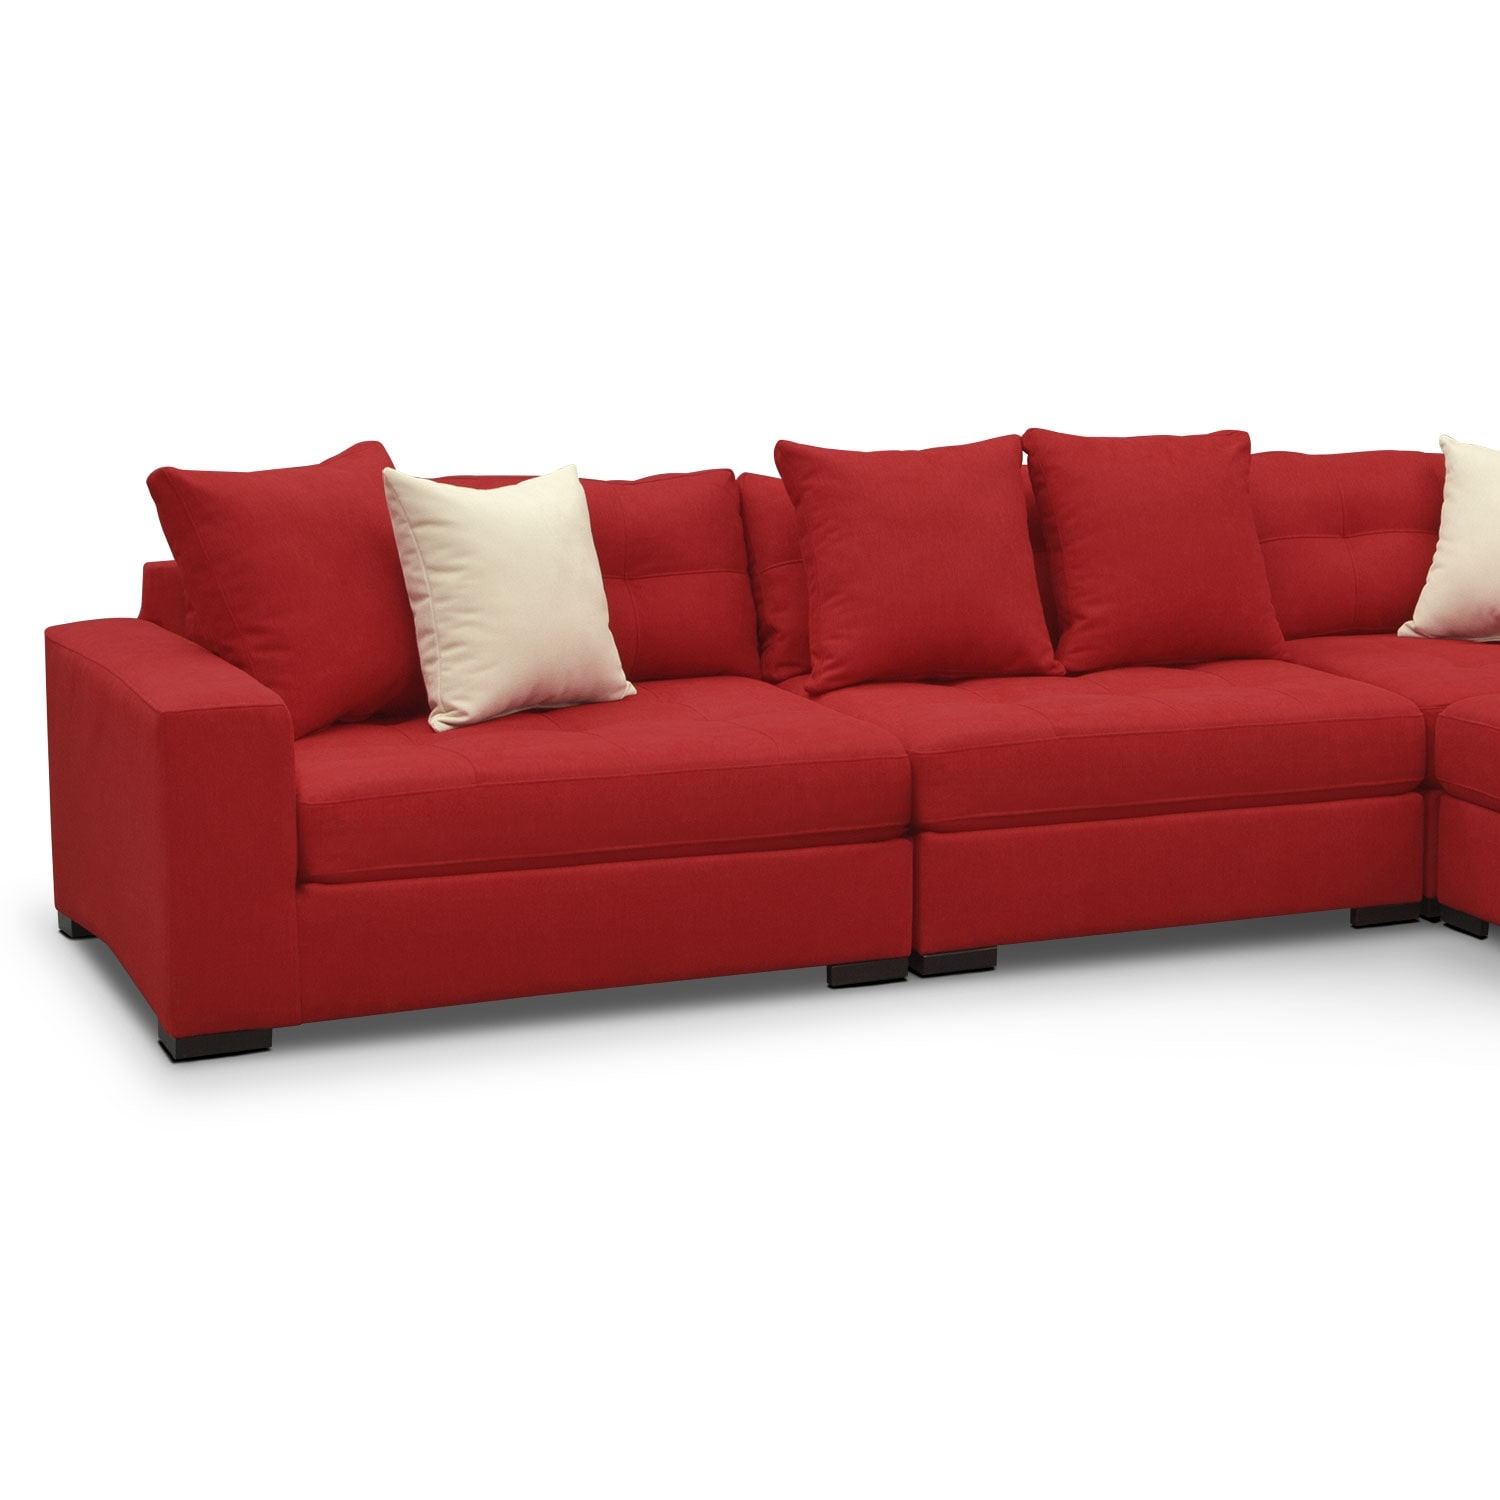 Venti red 5 pc sectional w cocktail ottoman value city for Red sectional sofa value city